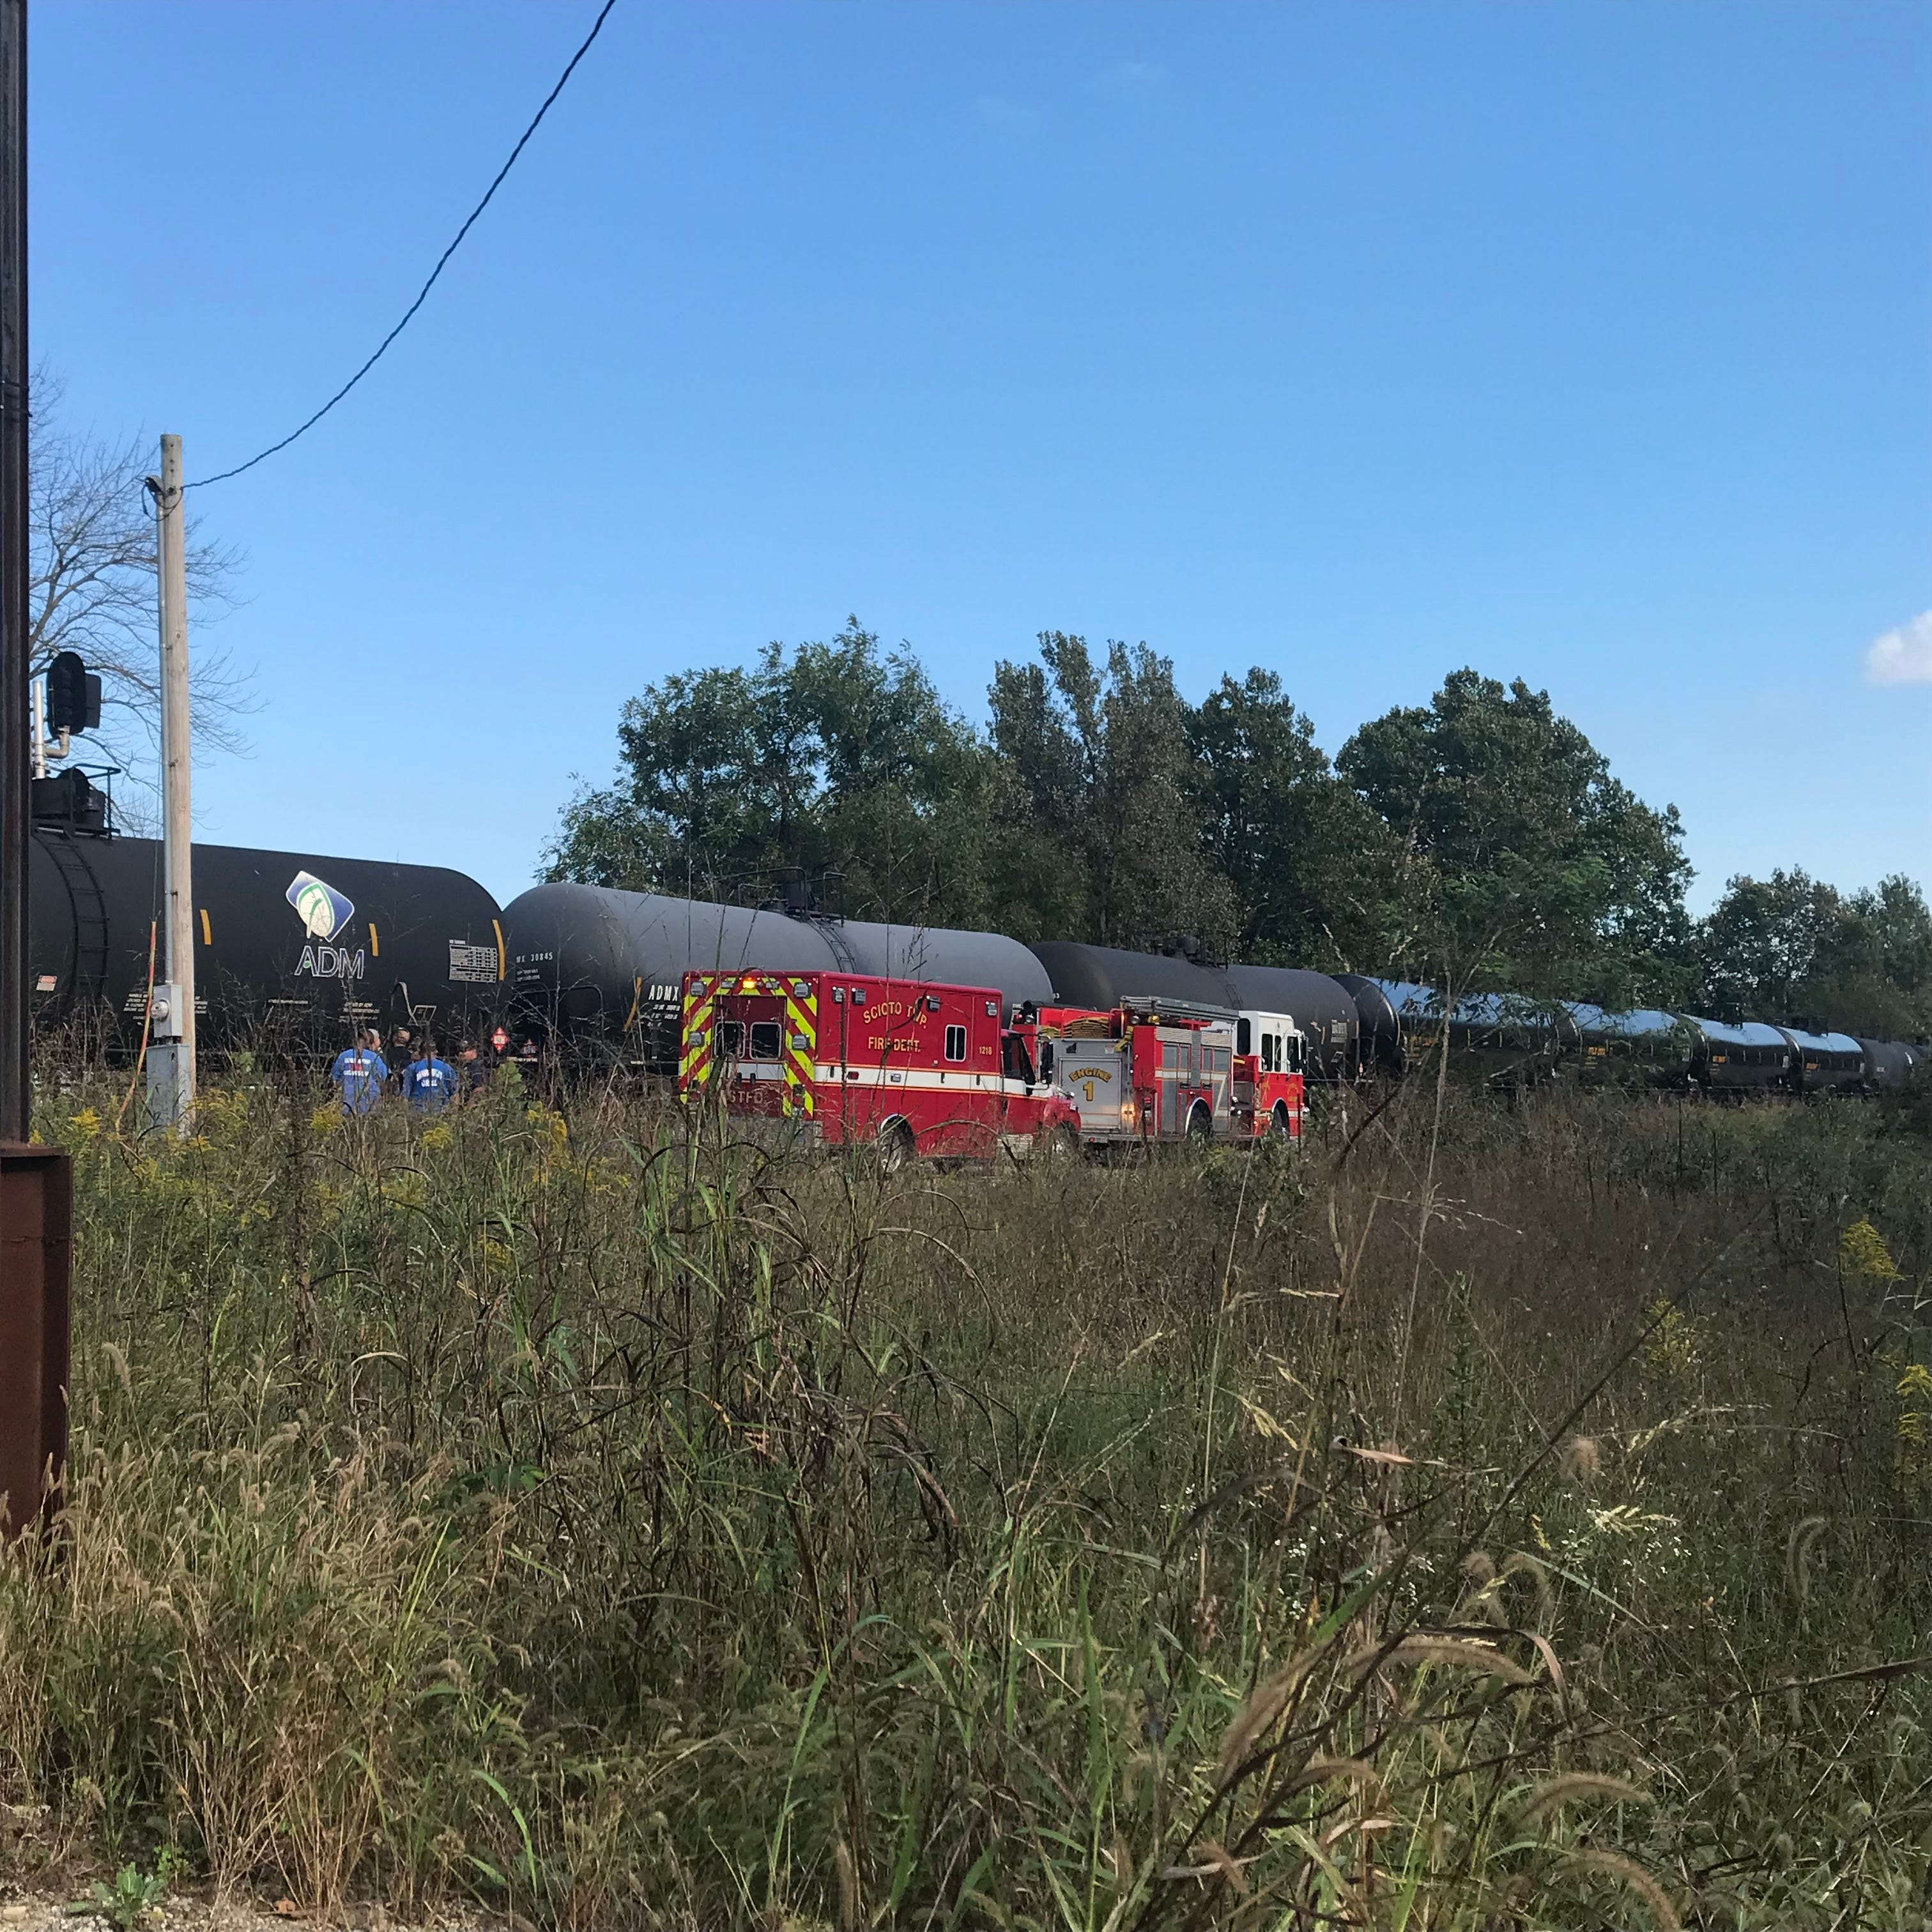 Man killed after being struck by train in Ross County